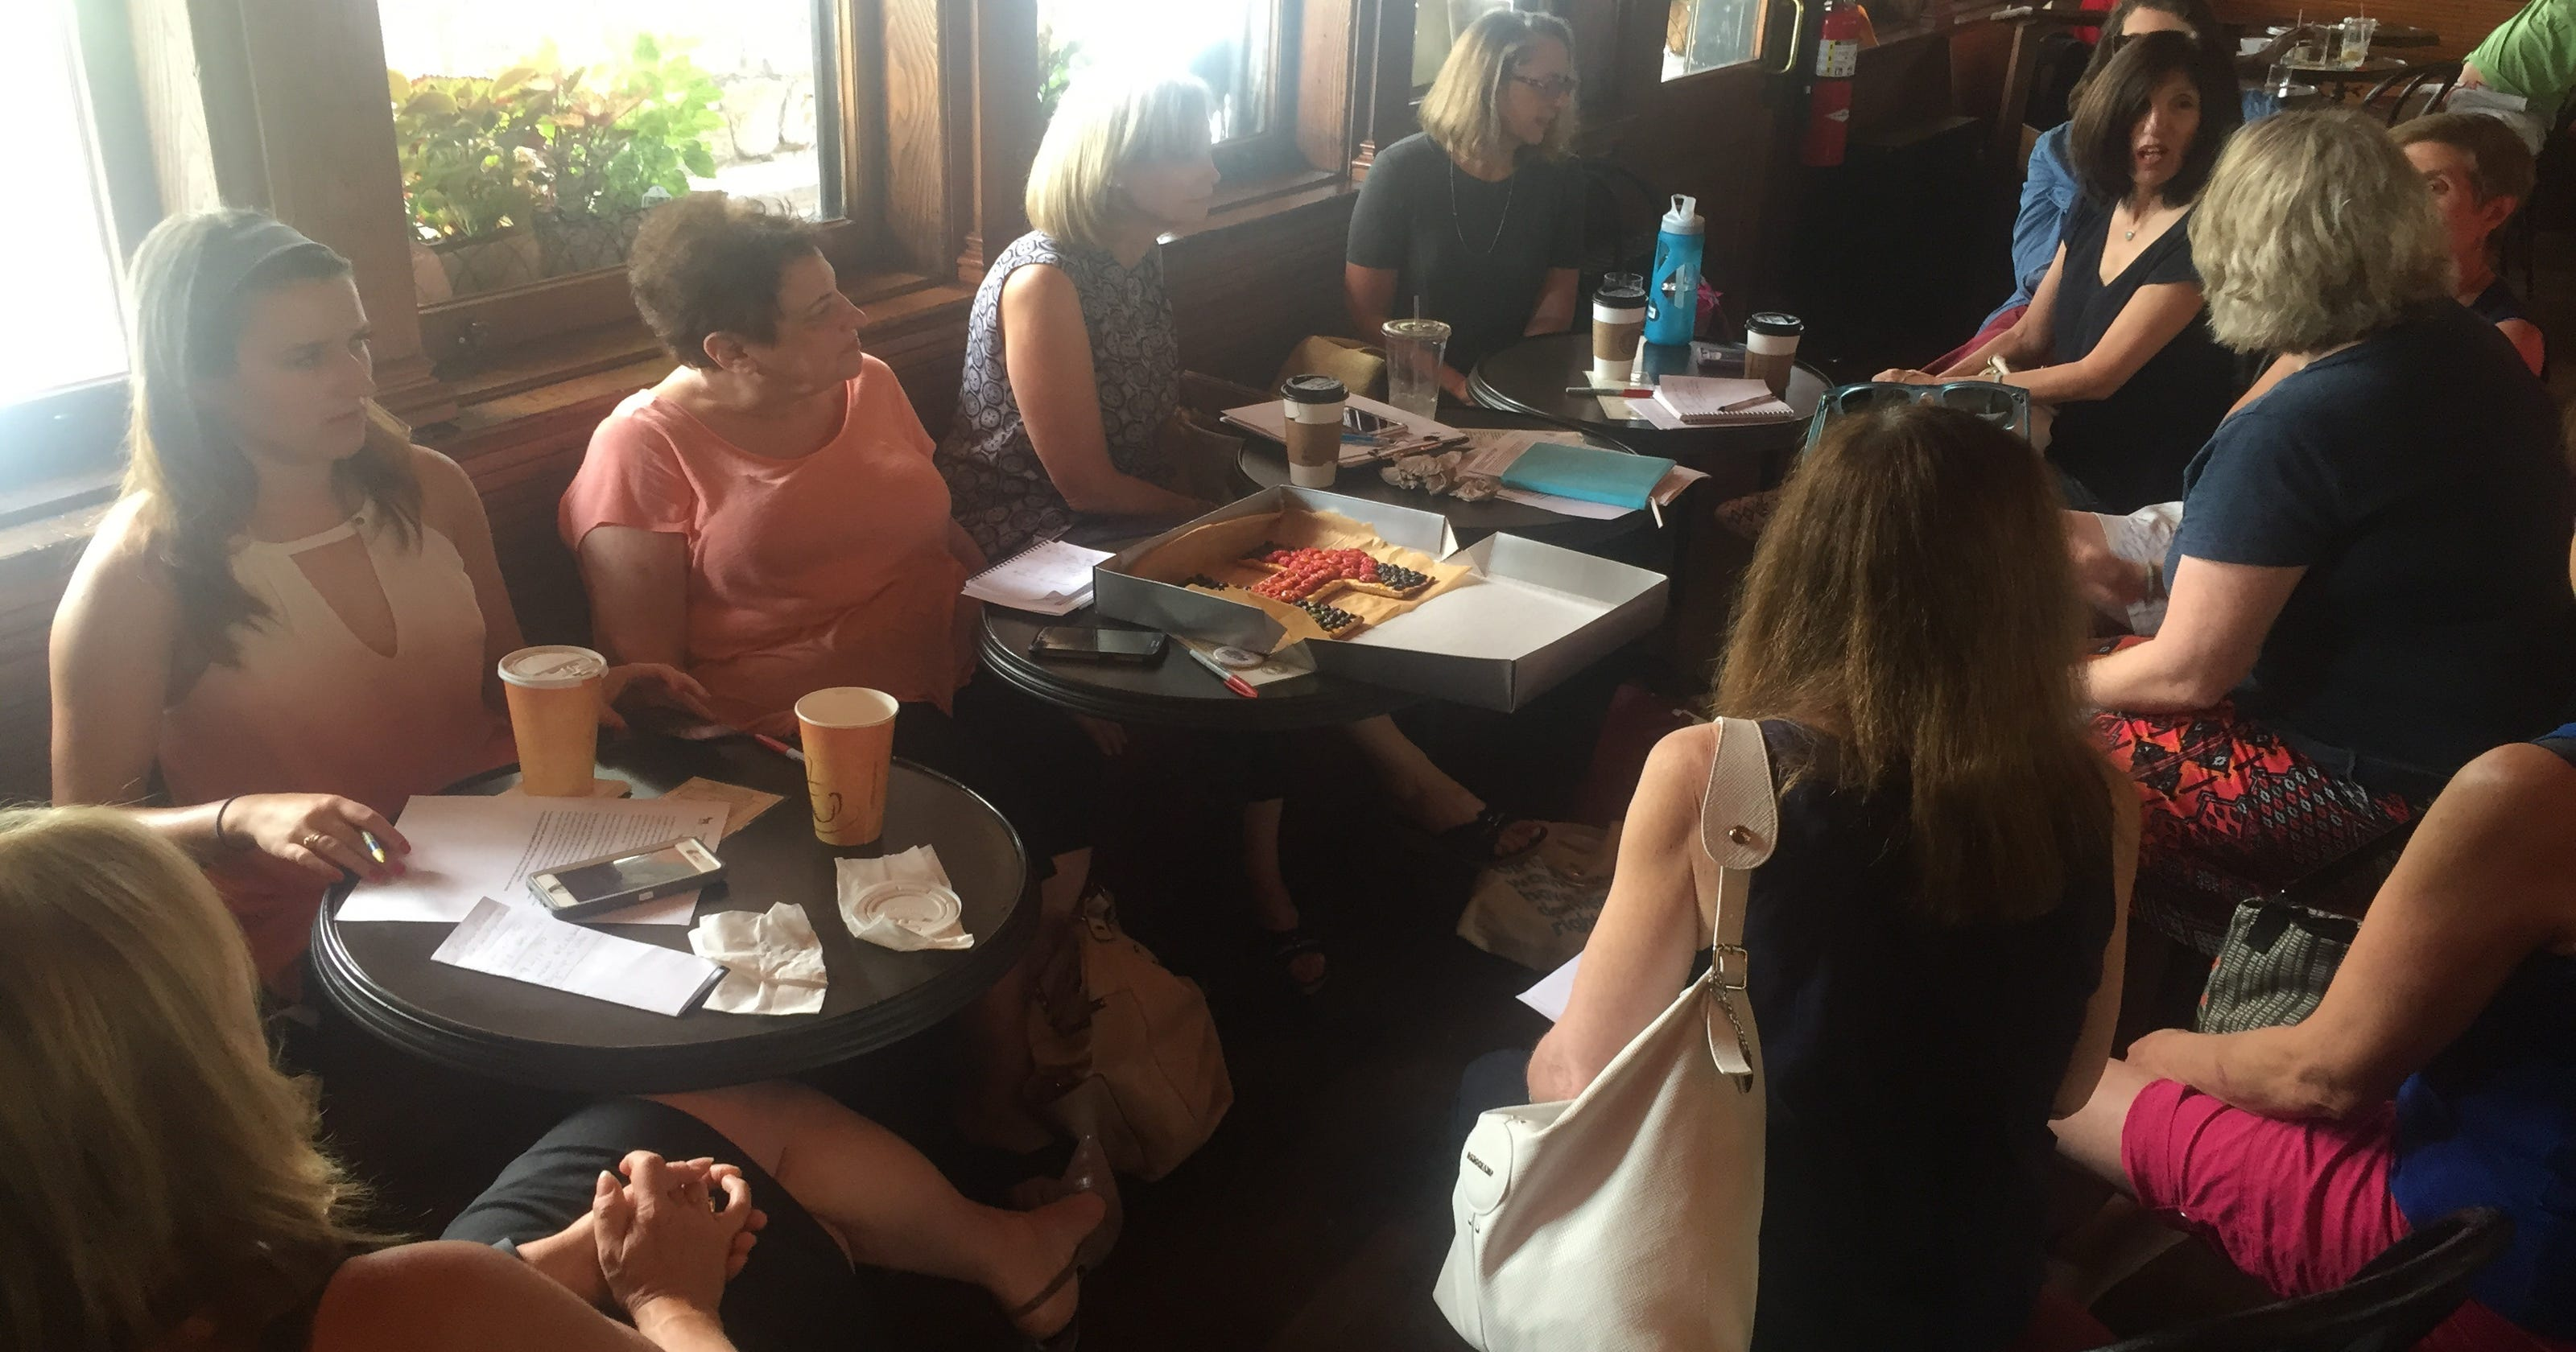 Restaurant Ideas Westchester 2020 Chappaqua's 'Friends of Hillary' ready for Democratic convention